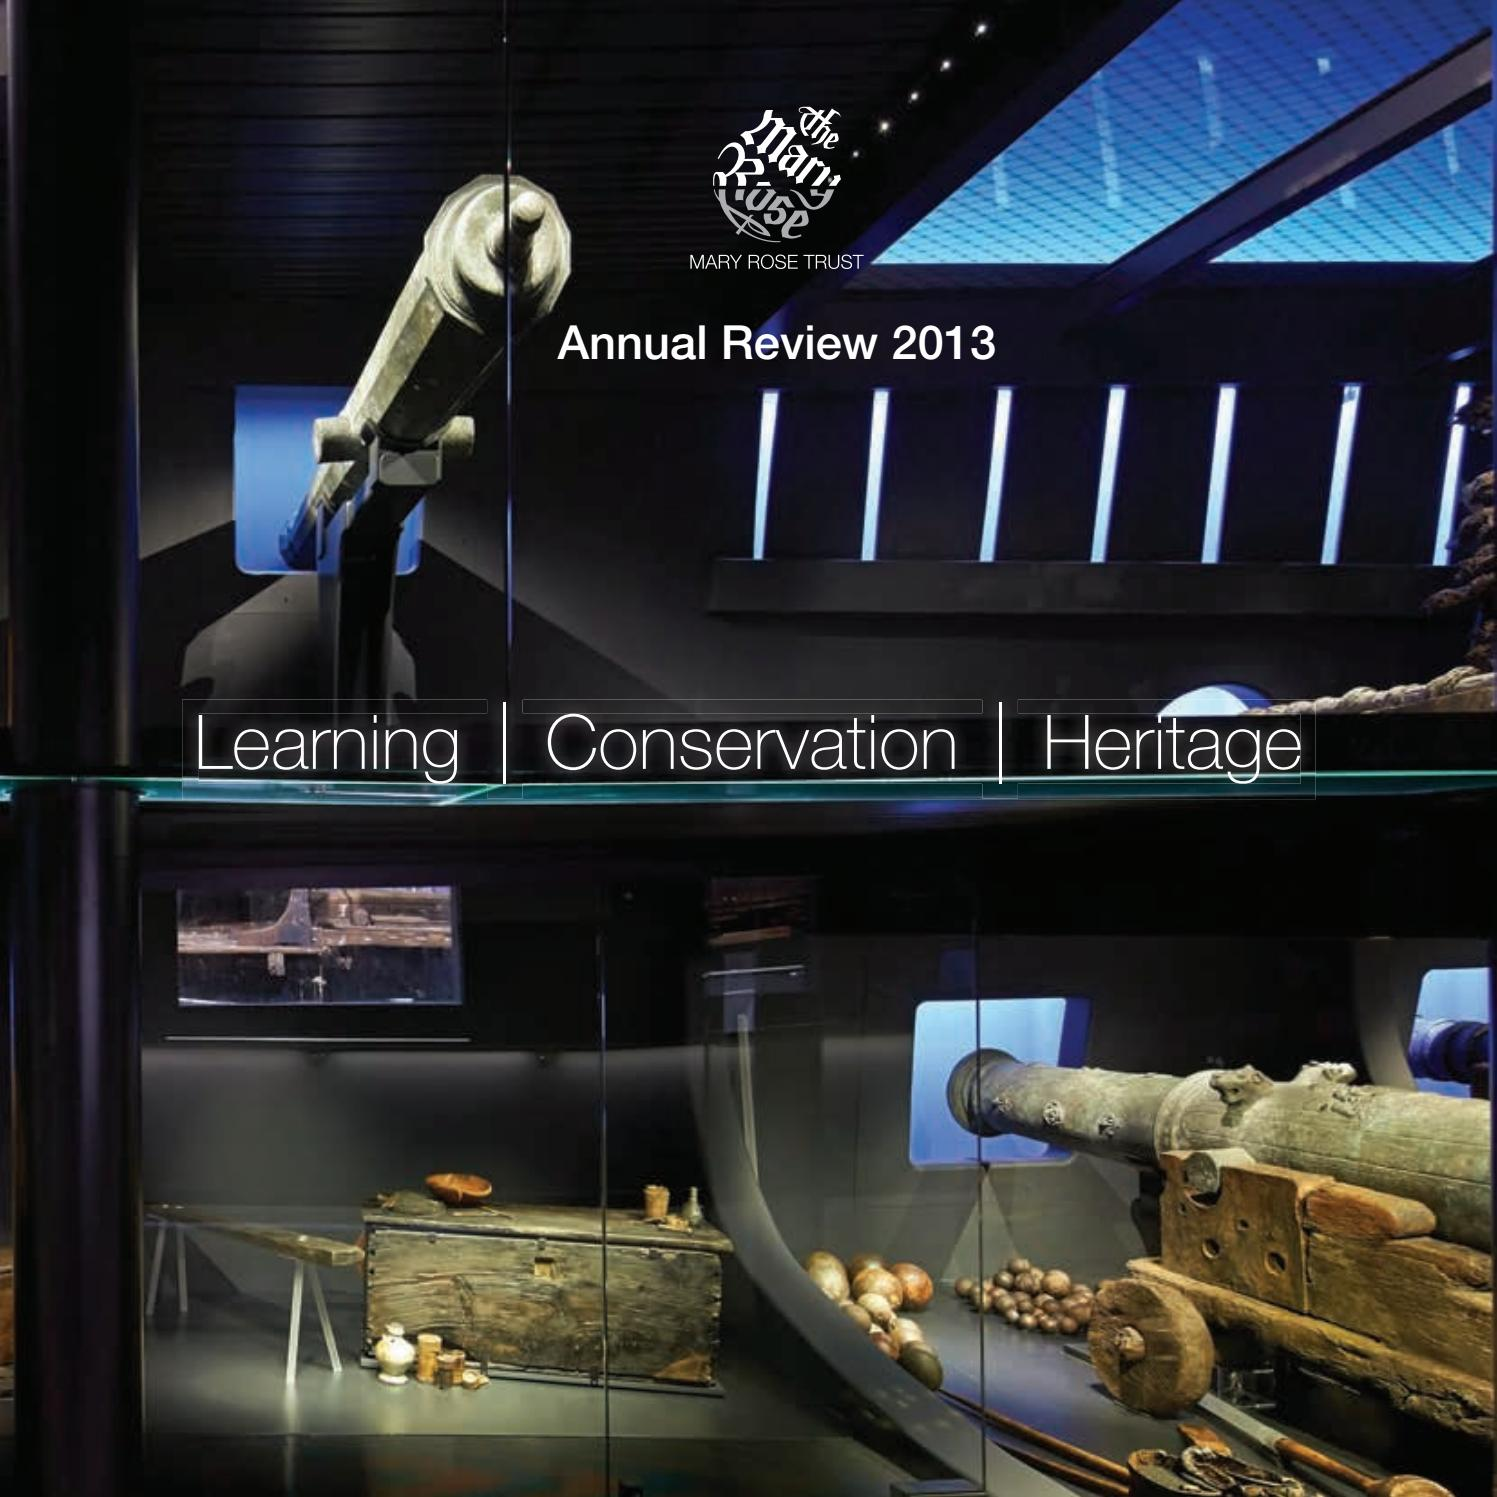 Mary Rose Trust Annual Review 2013 by MaryRoseMuseum - issuu